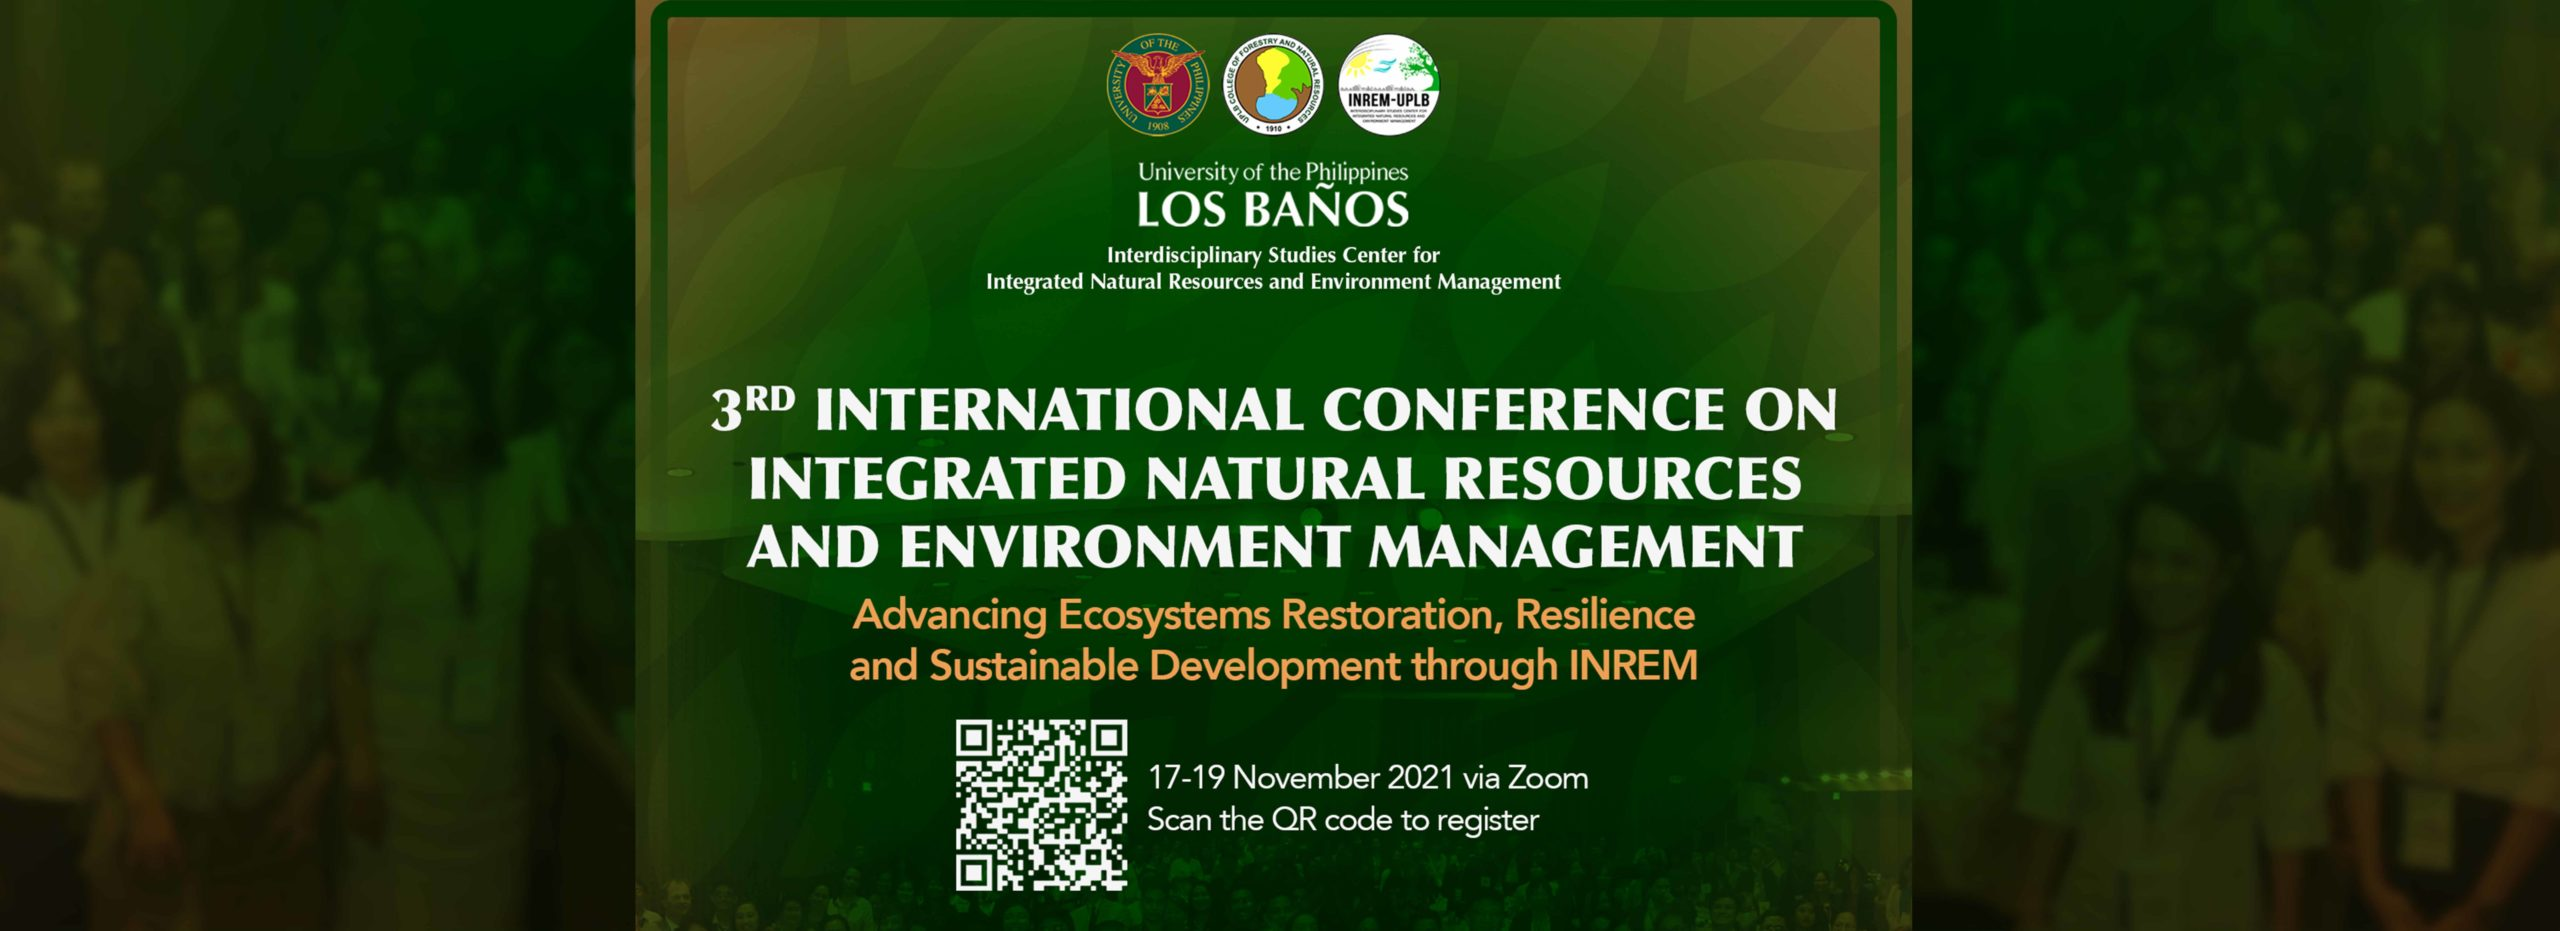 3rd International Conference on Integrated Natural Resources and Environment Management